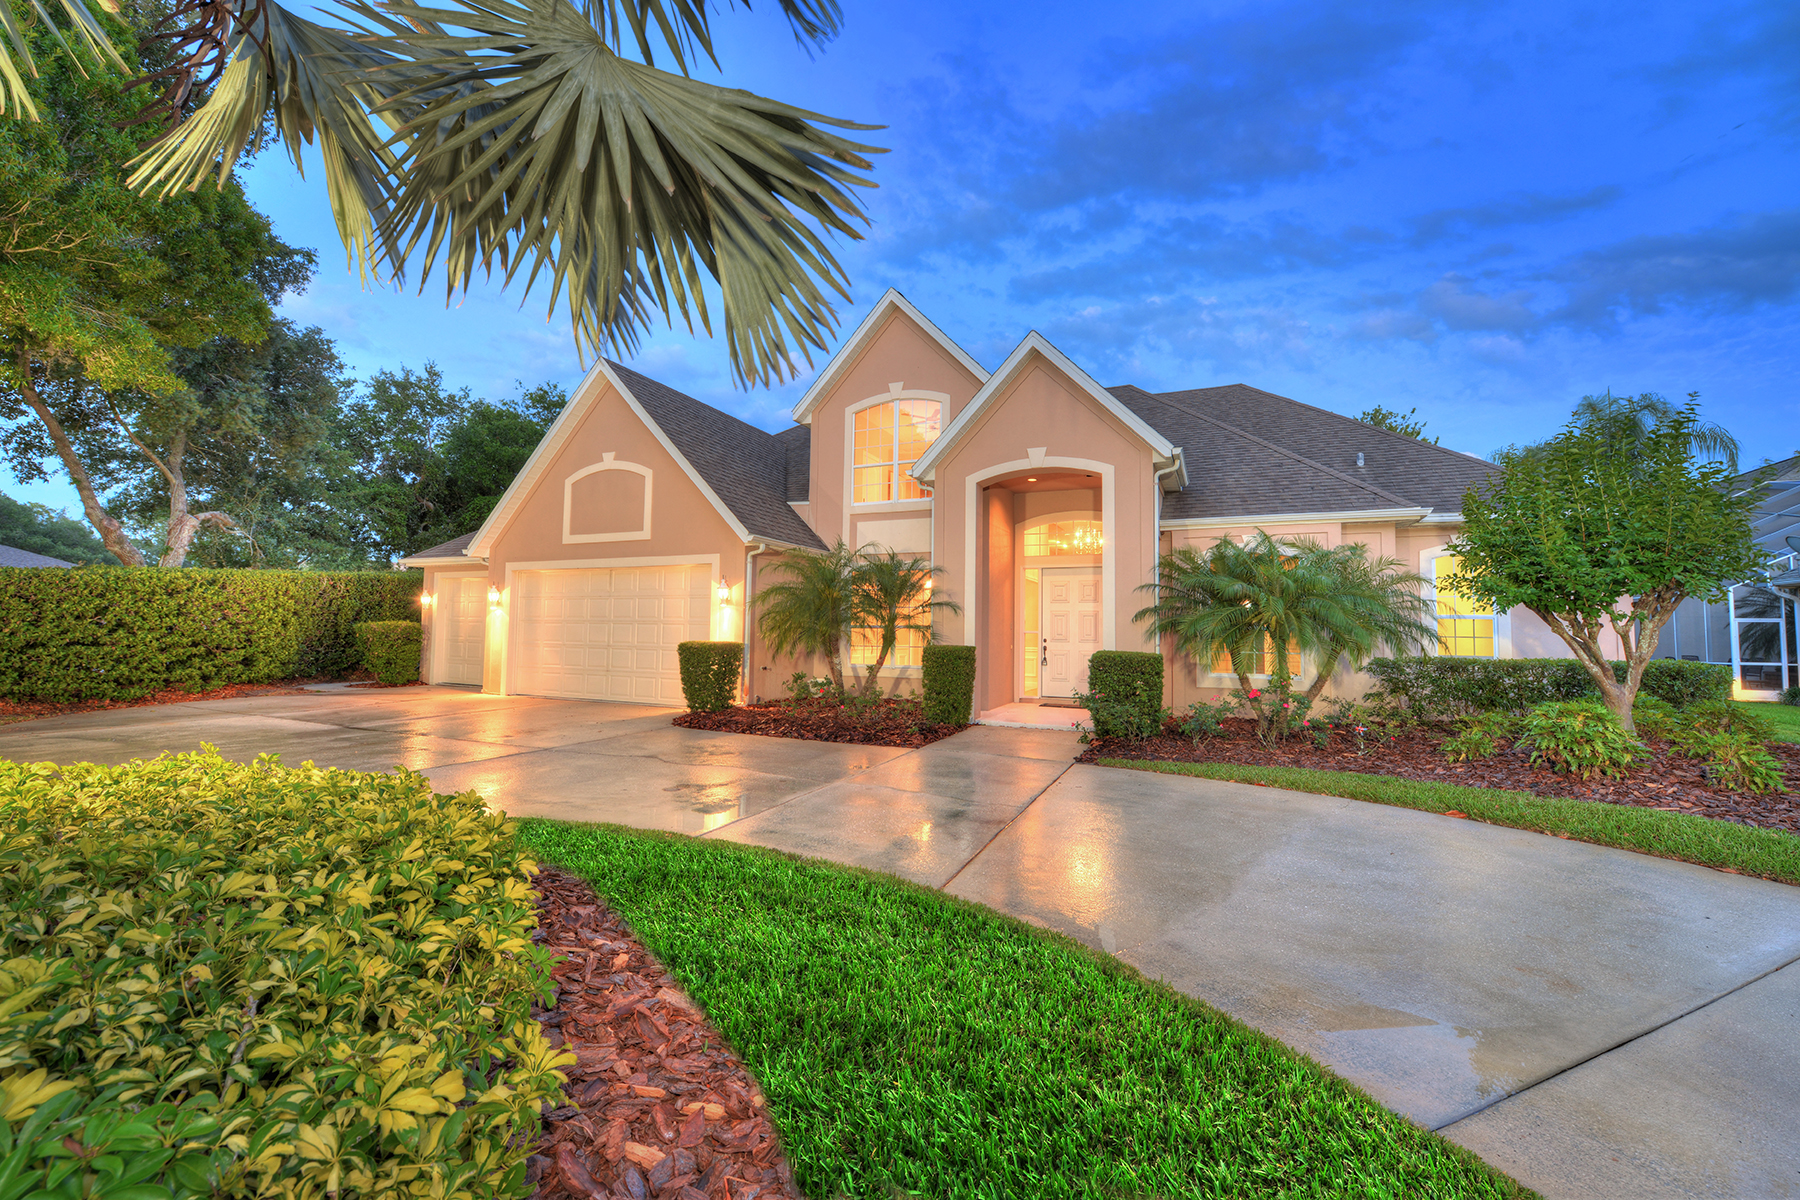 Single Family Homes for Active at 1854 Seclusion Dr Port Orange, Florida 32128 United States